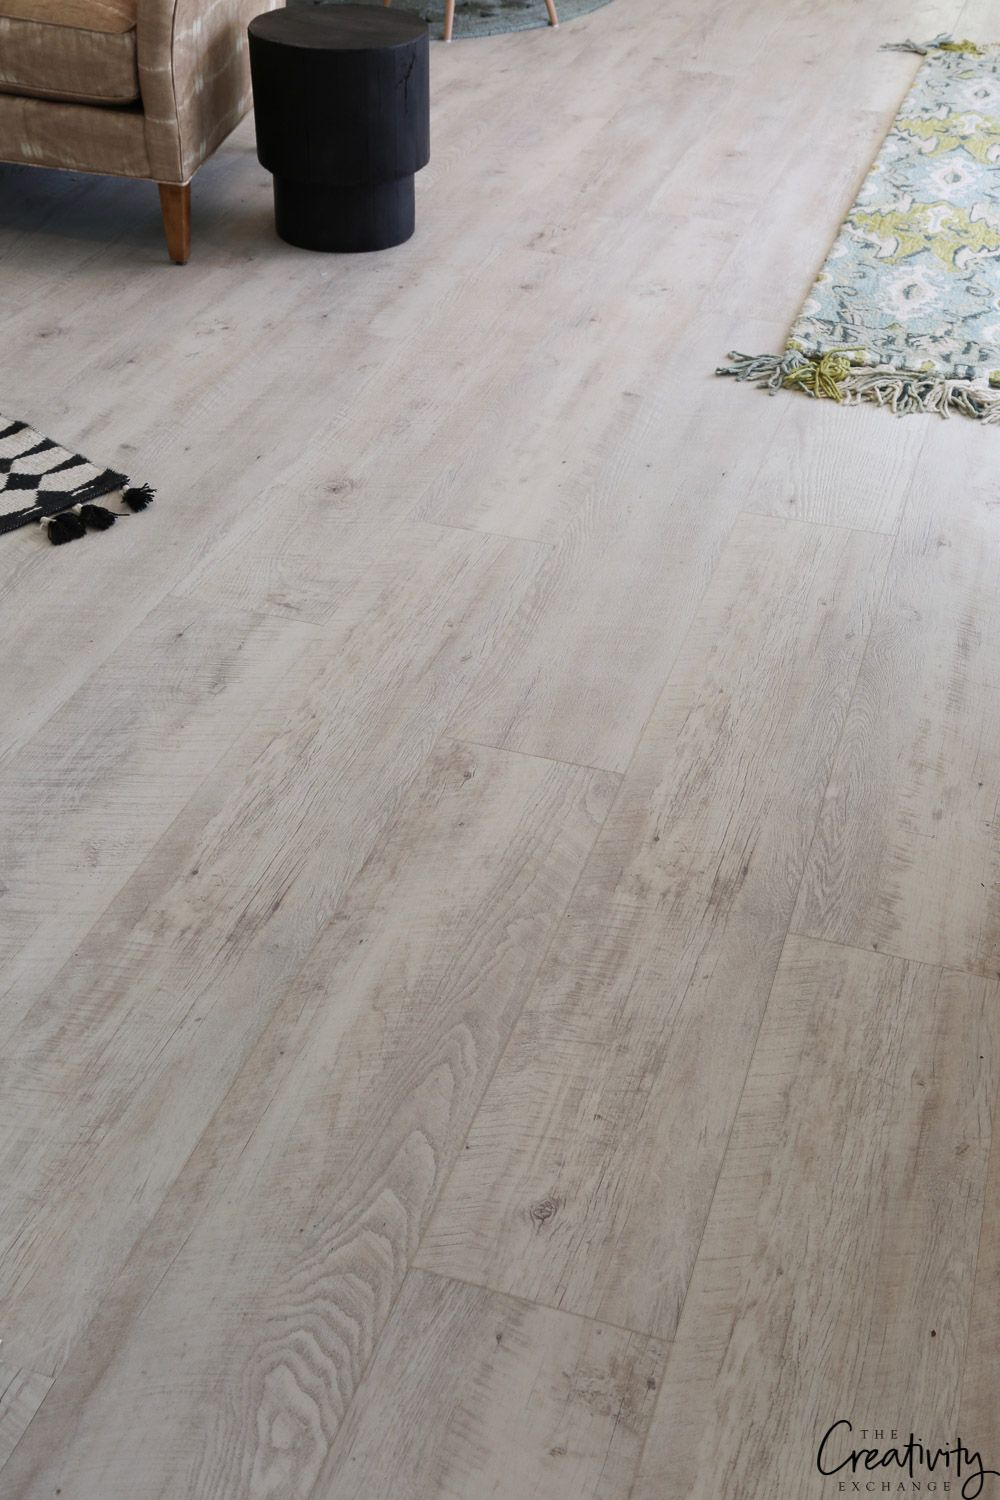 Learn more about your wood flooring options with this quick guide from diy network. Modern Farmhouse Home Tour: Millhaven Homes | Vinyl ...